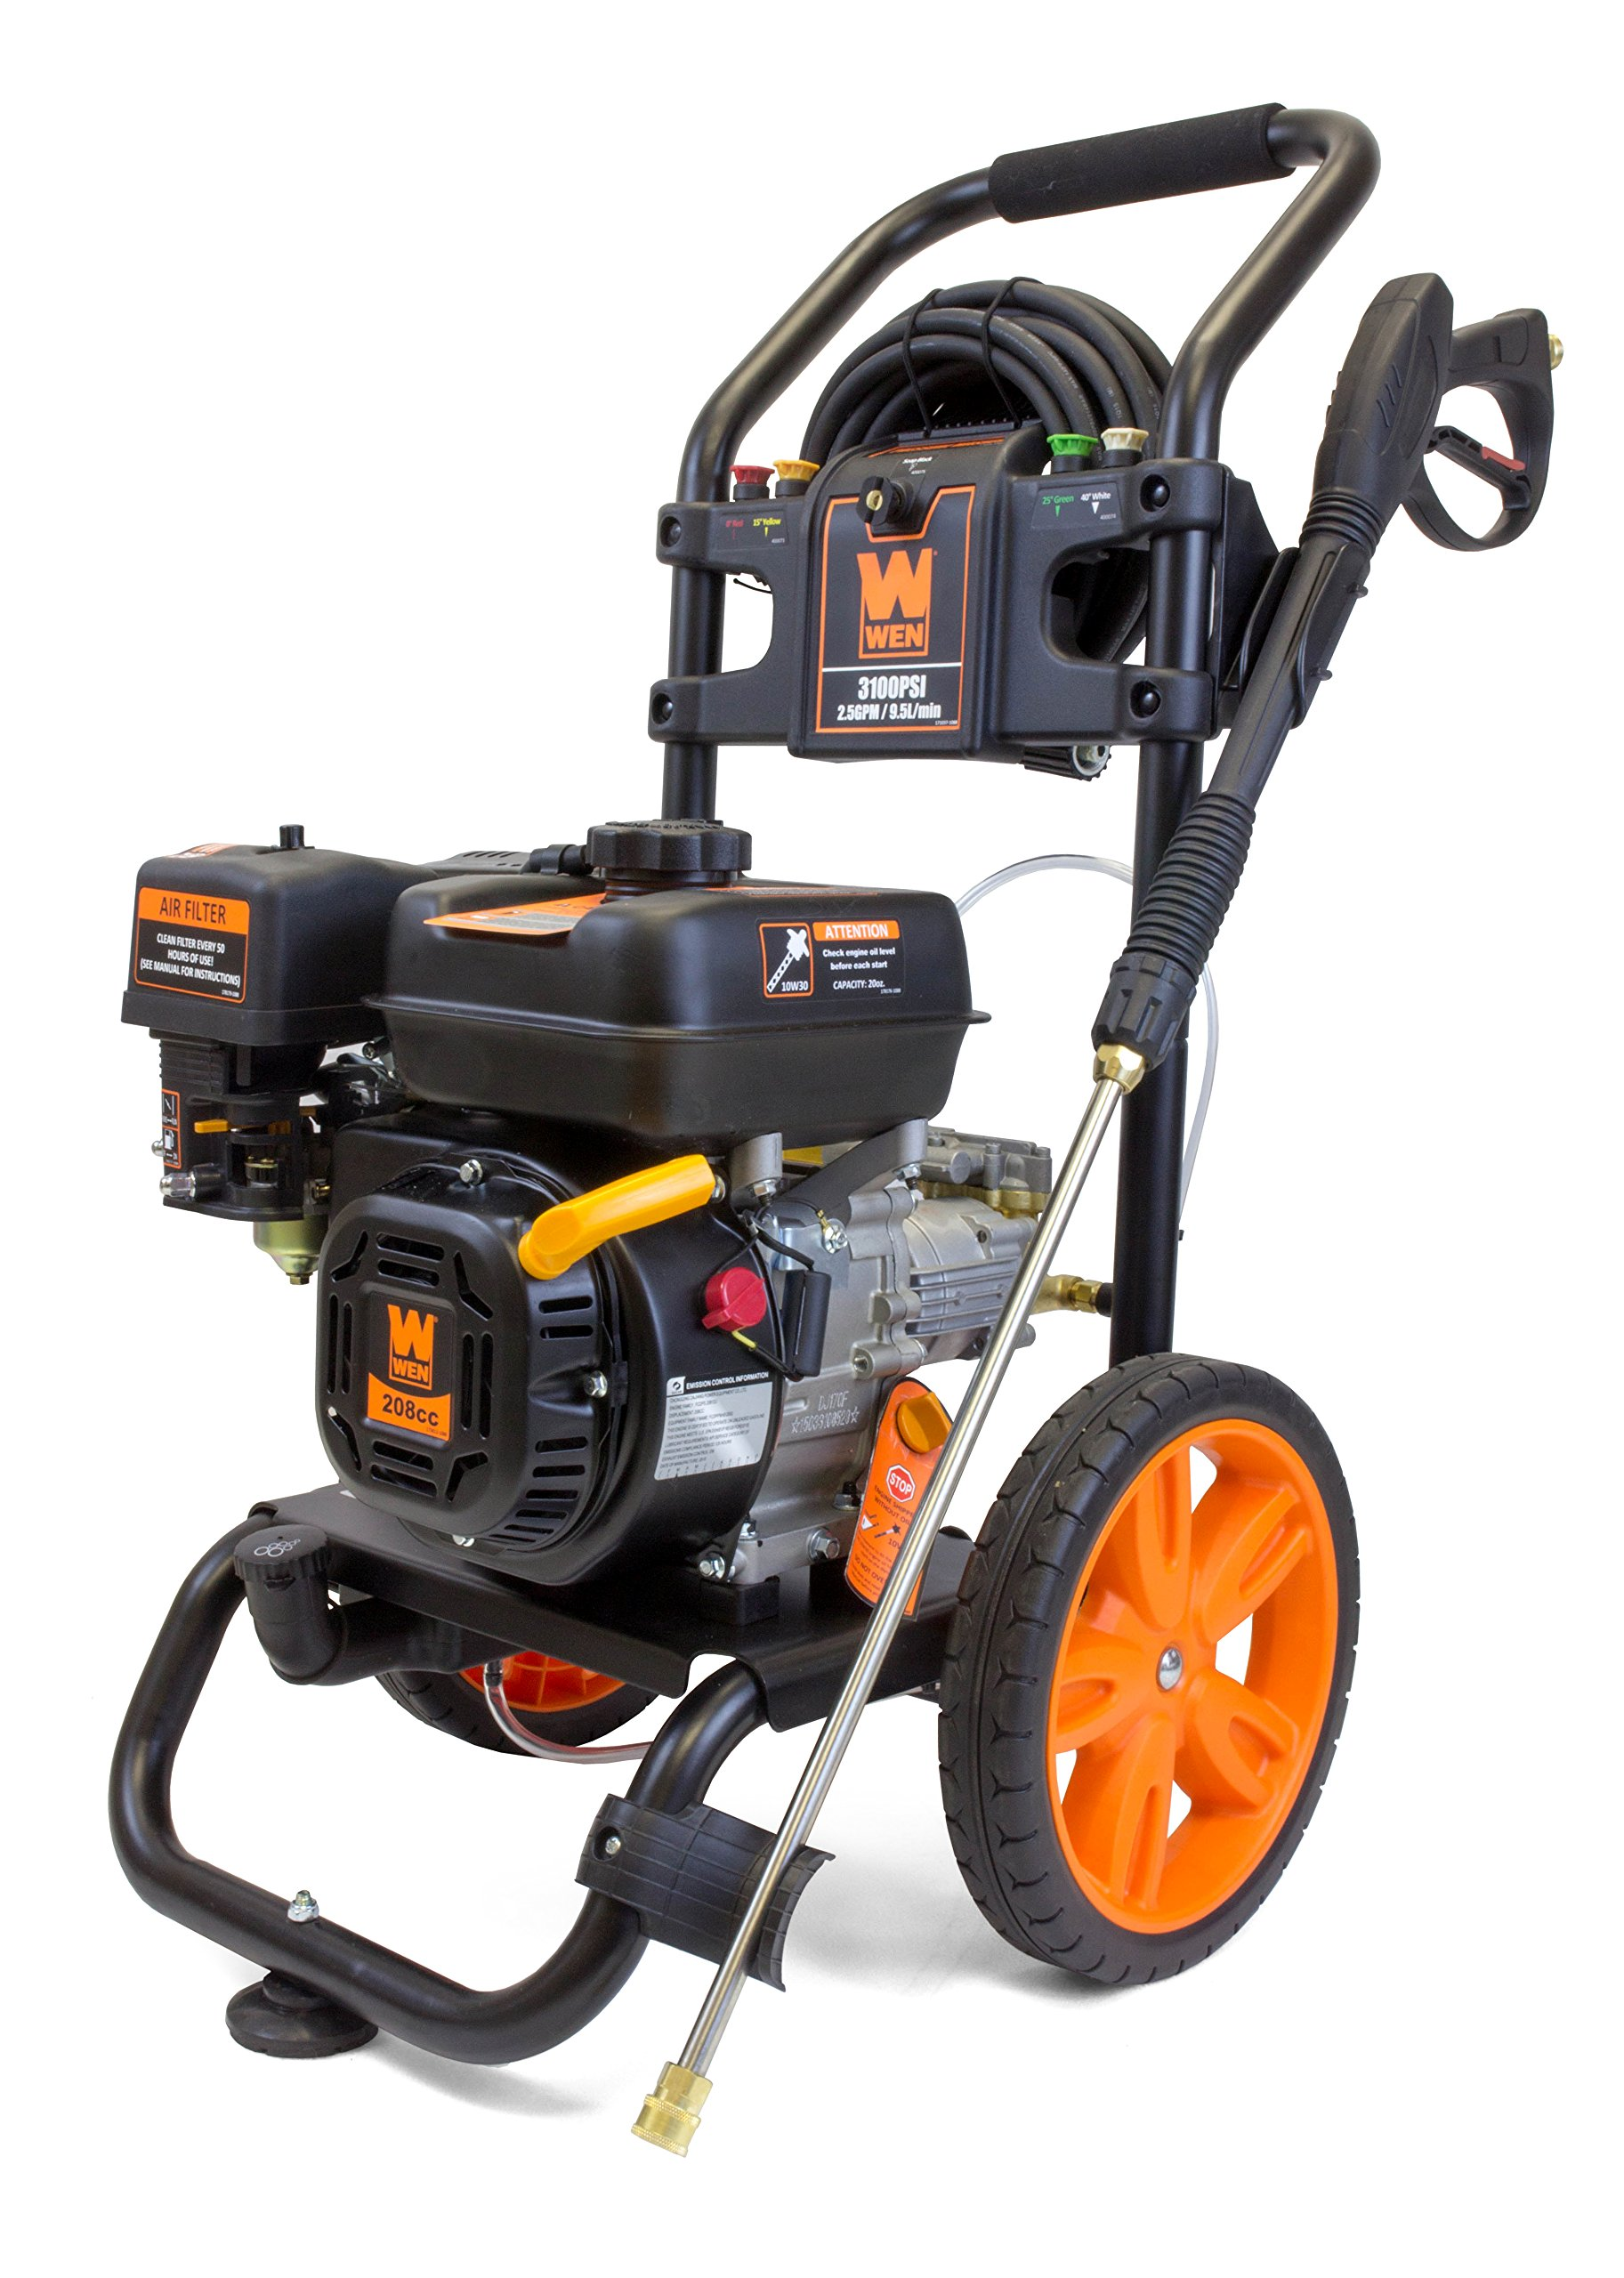 WEN PW3100 Gas Powered Pressure Compliant